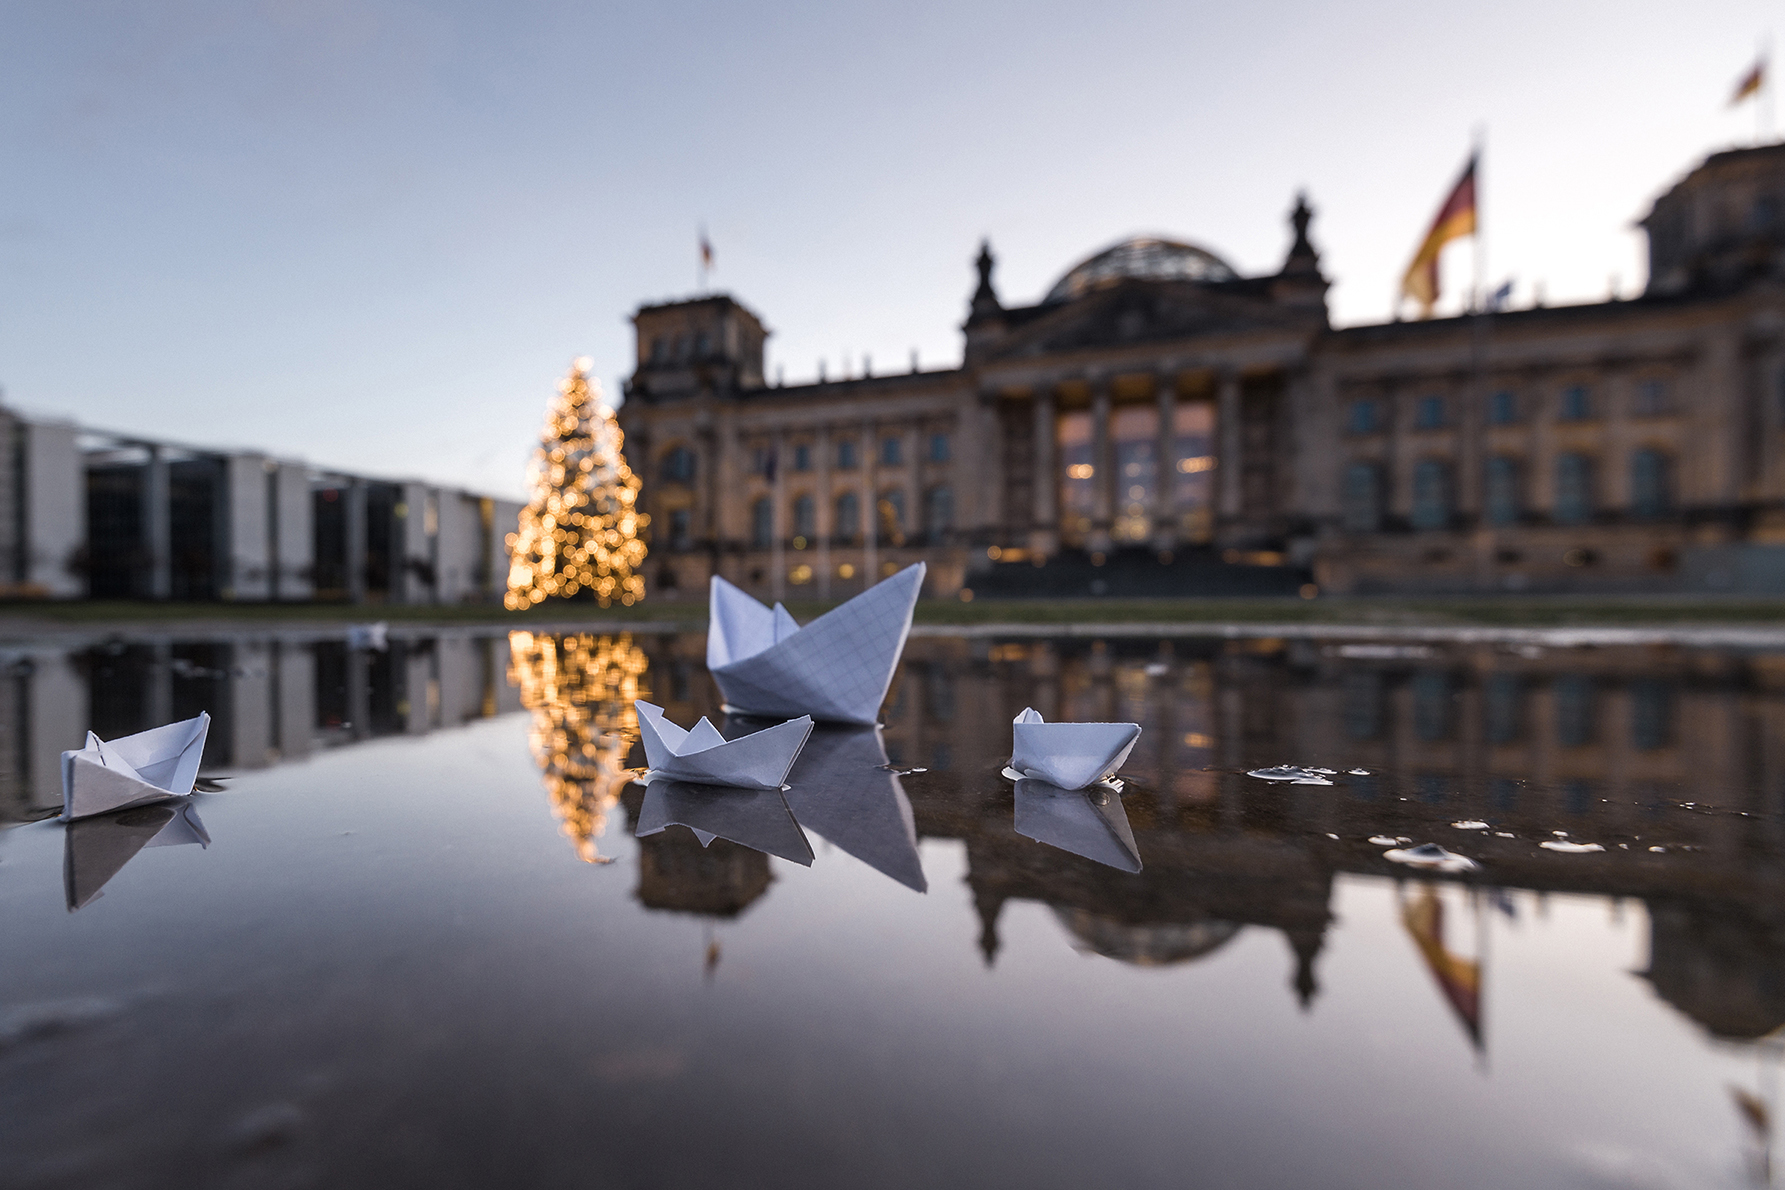 "Delicate origami boats float in a puddle across from the Reichstag in Berlin, Germany. An historical monument built to house the Imperial Diet. Today, the meeting place of the Bundestag ""Federal Assembly"", the lower house of Germany's national legislature. December 12, 2015 Photo by Marcello Zerletti retrieved from Flickr.com"